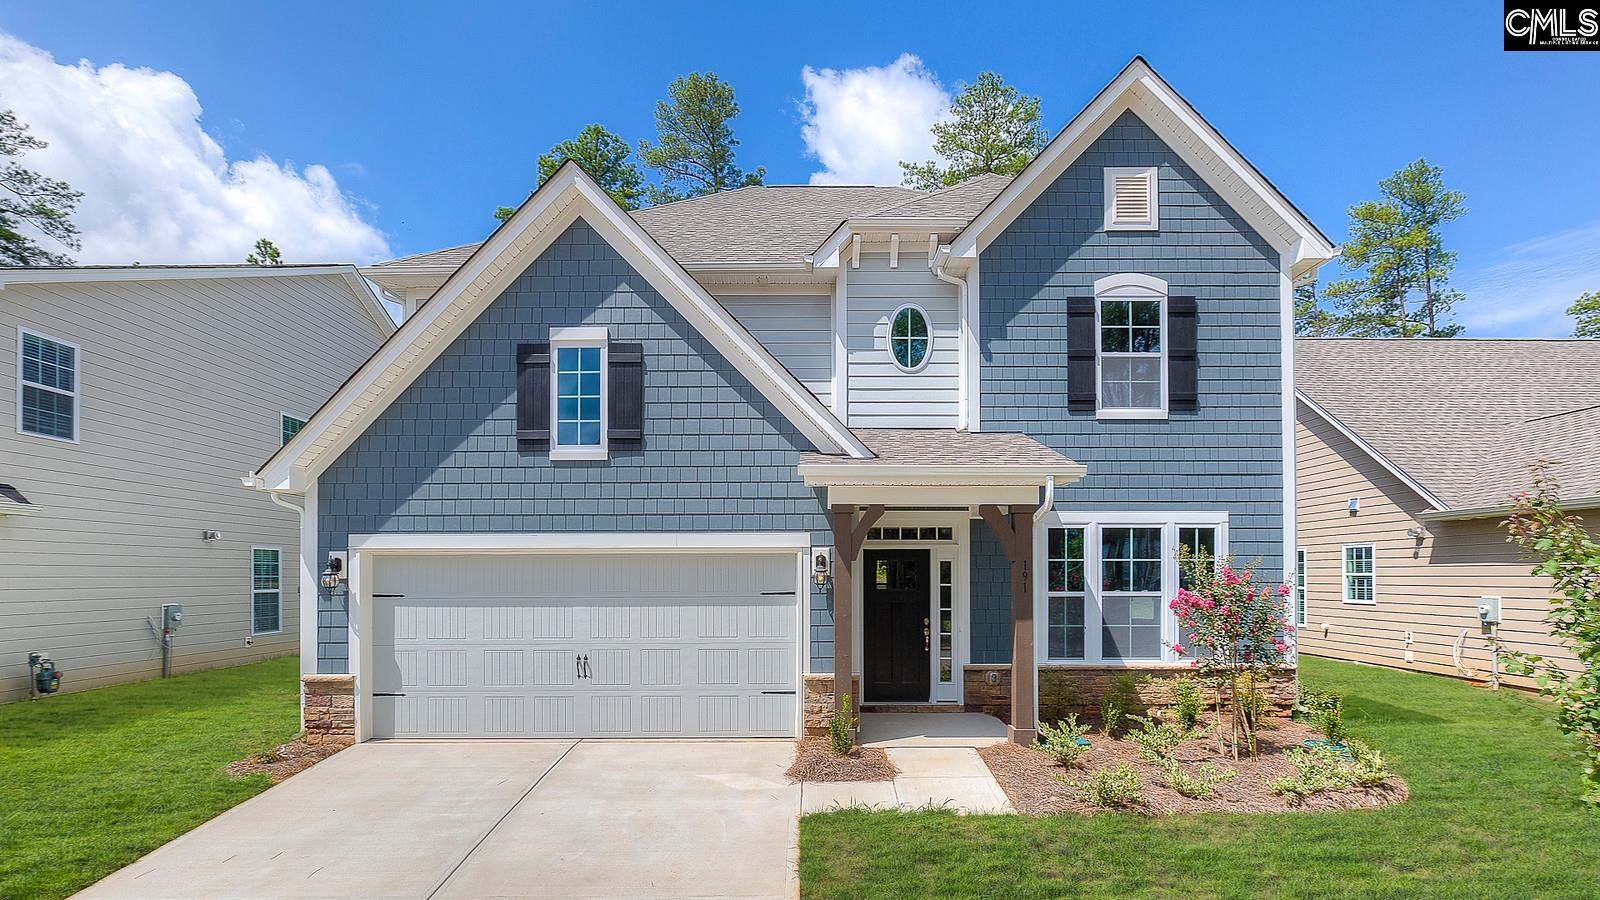 238 High Point Blythewood, SC 29016